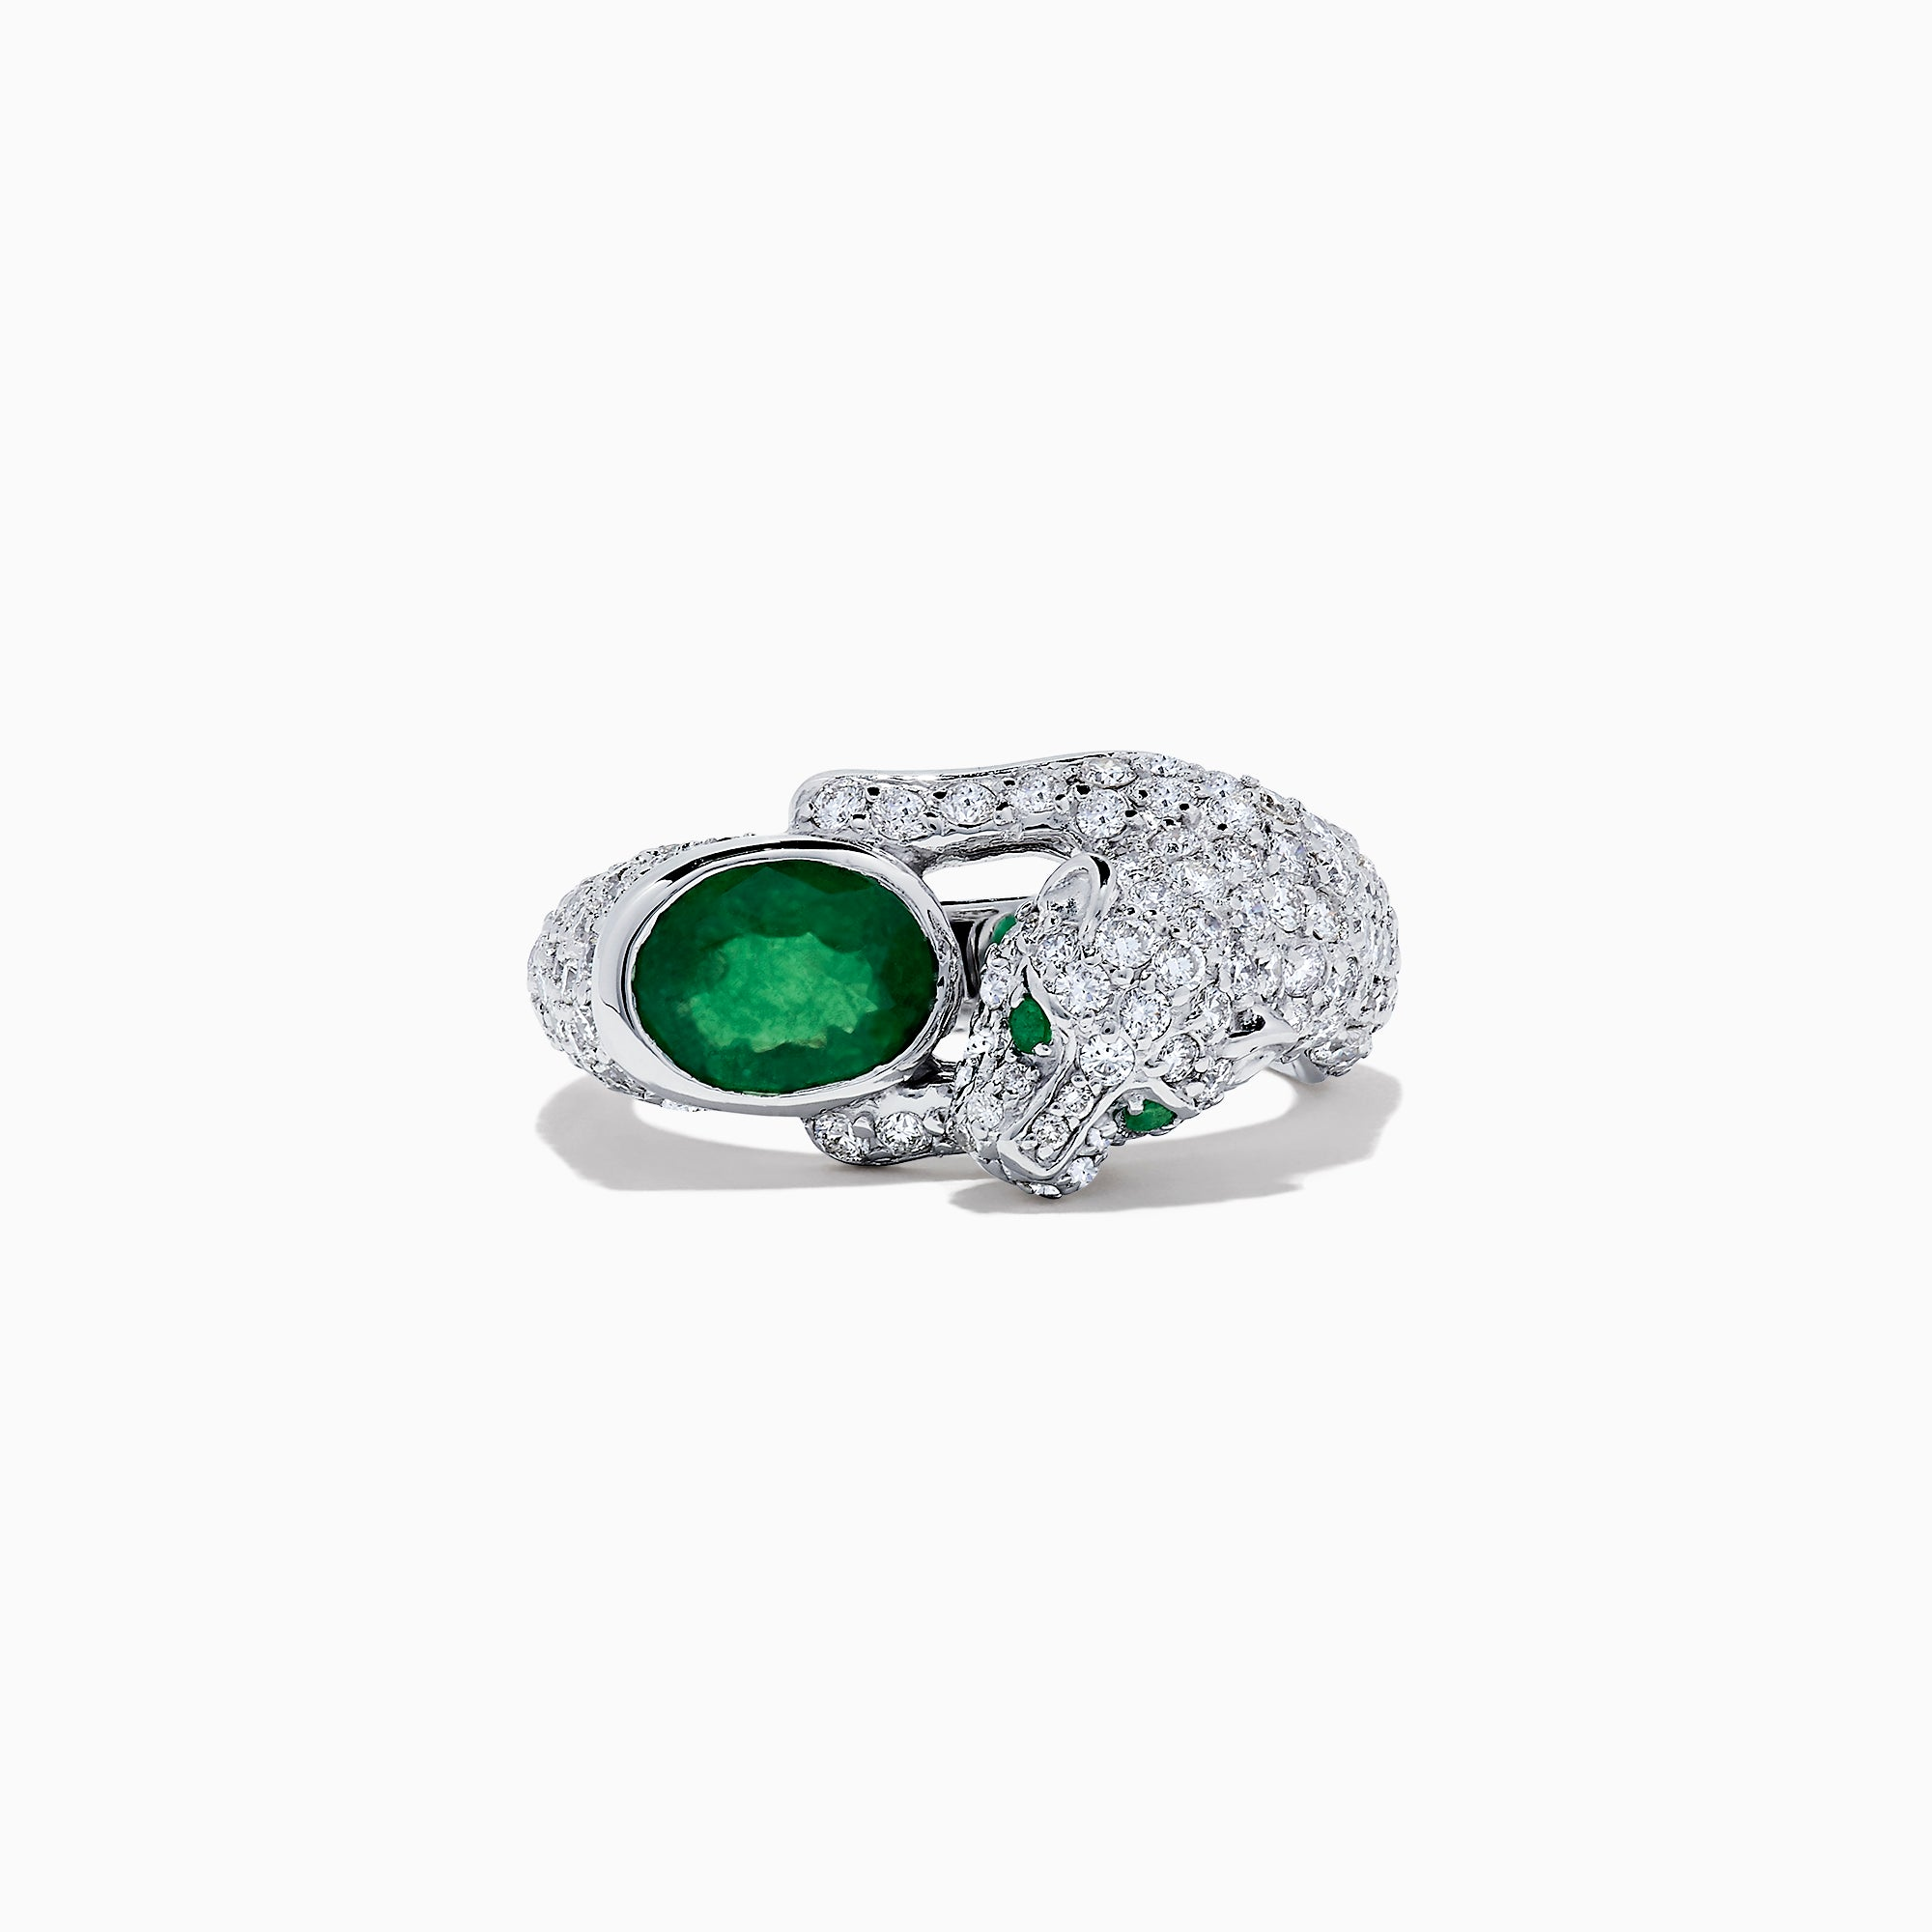 Effy Signature 14K White Gold Emerald and Diamond Panther Ring, 3.70 TCW